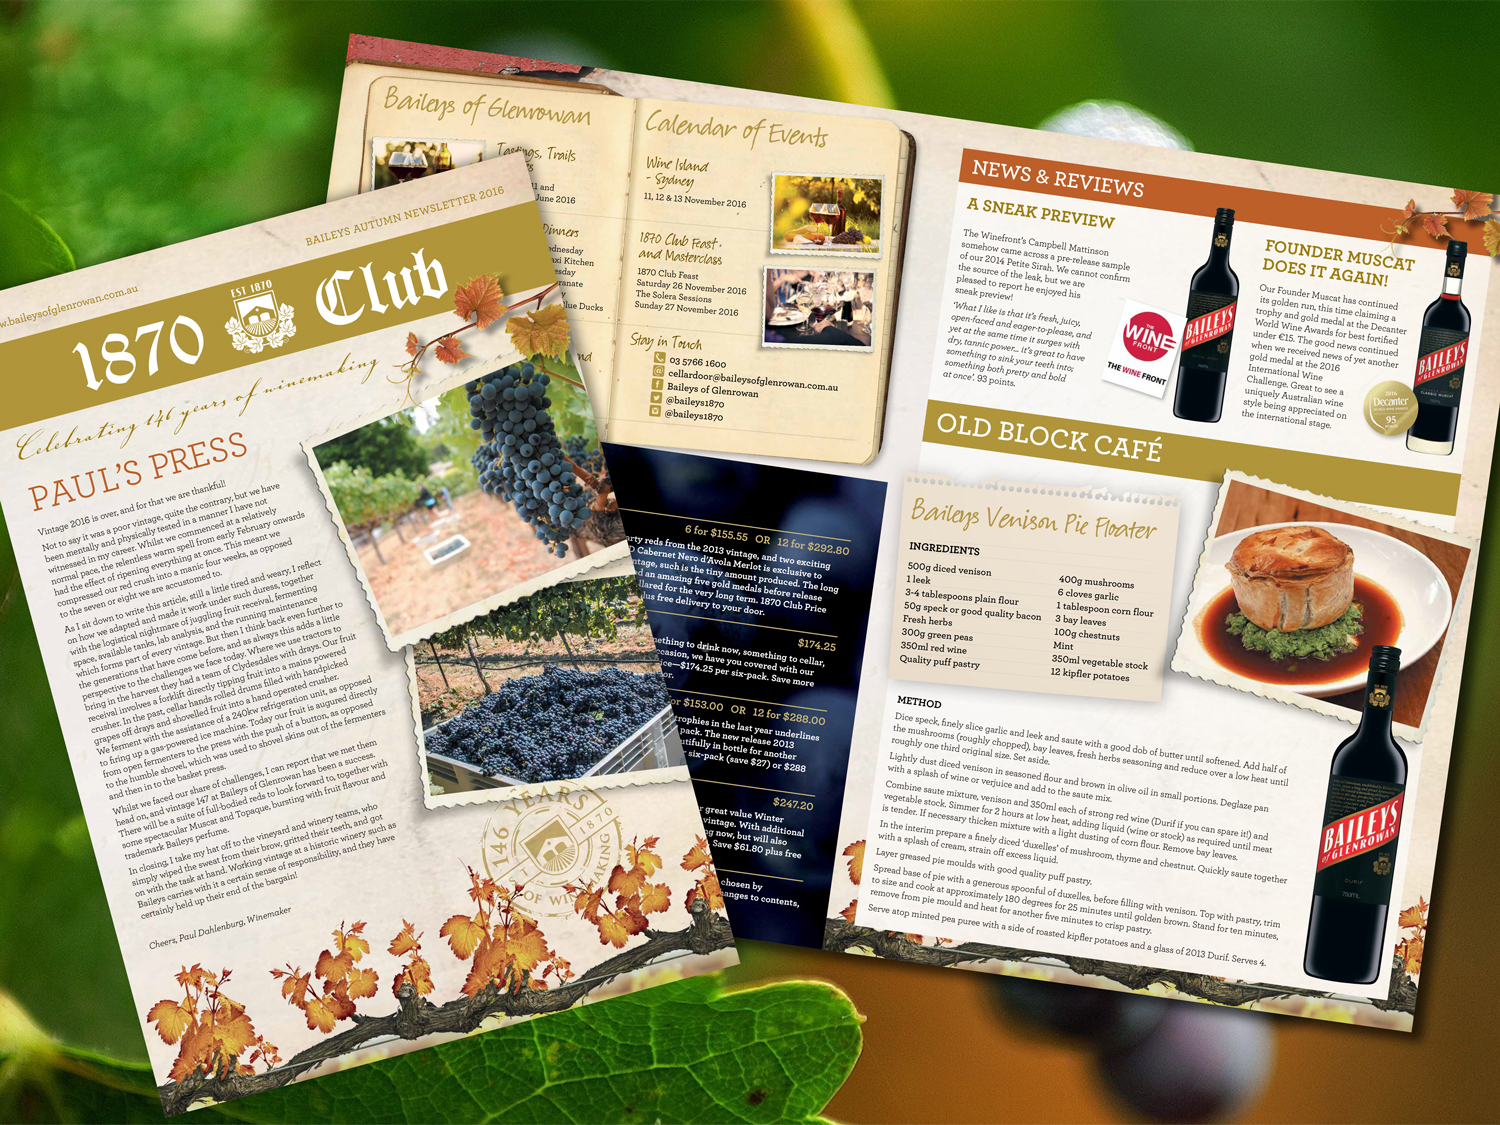 Baileys of Glenrowan 1870 Club Newsletter